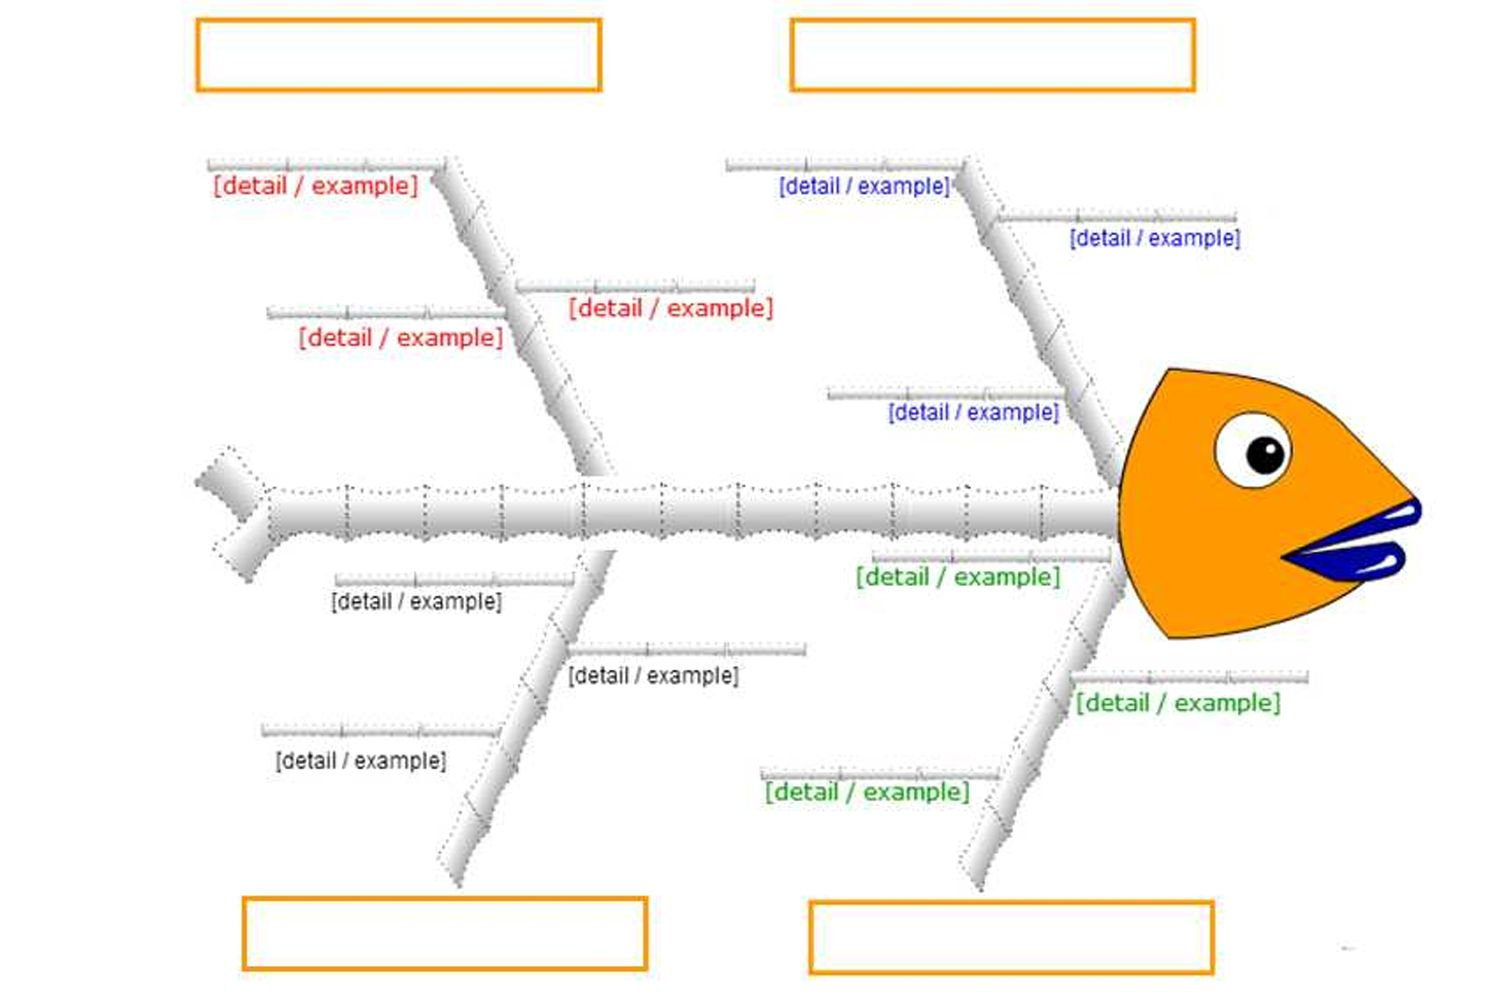 Fish Bone Diagram Template For Iwb